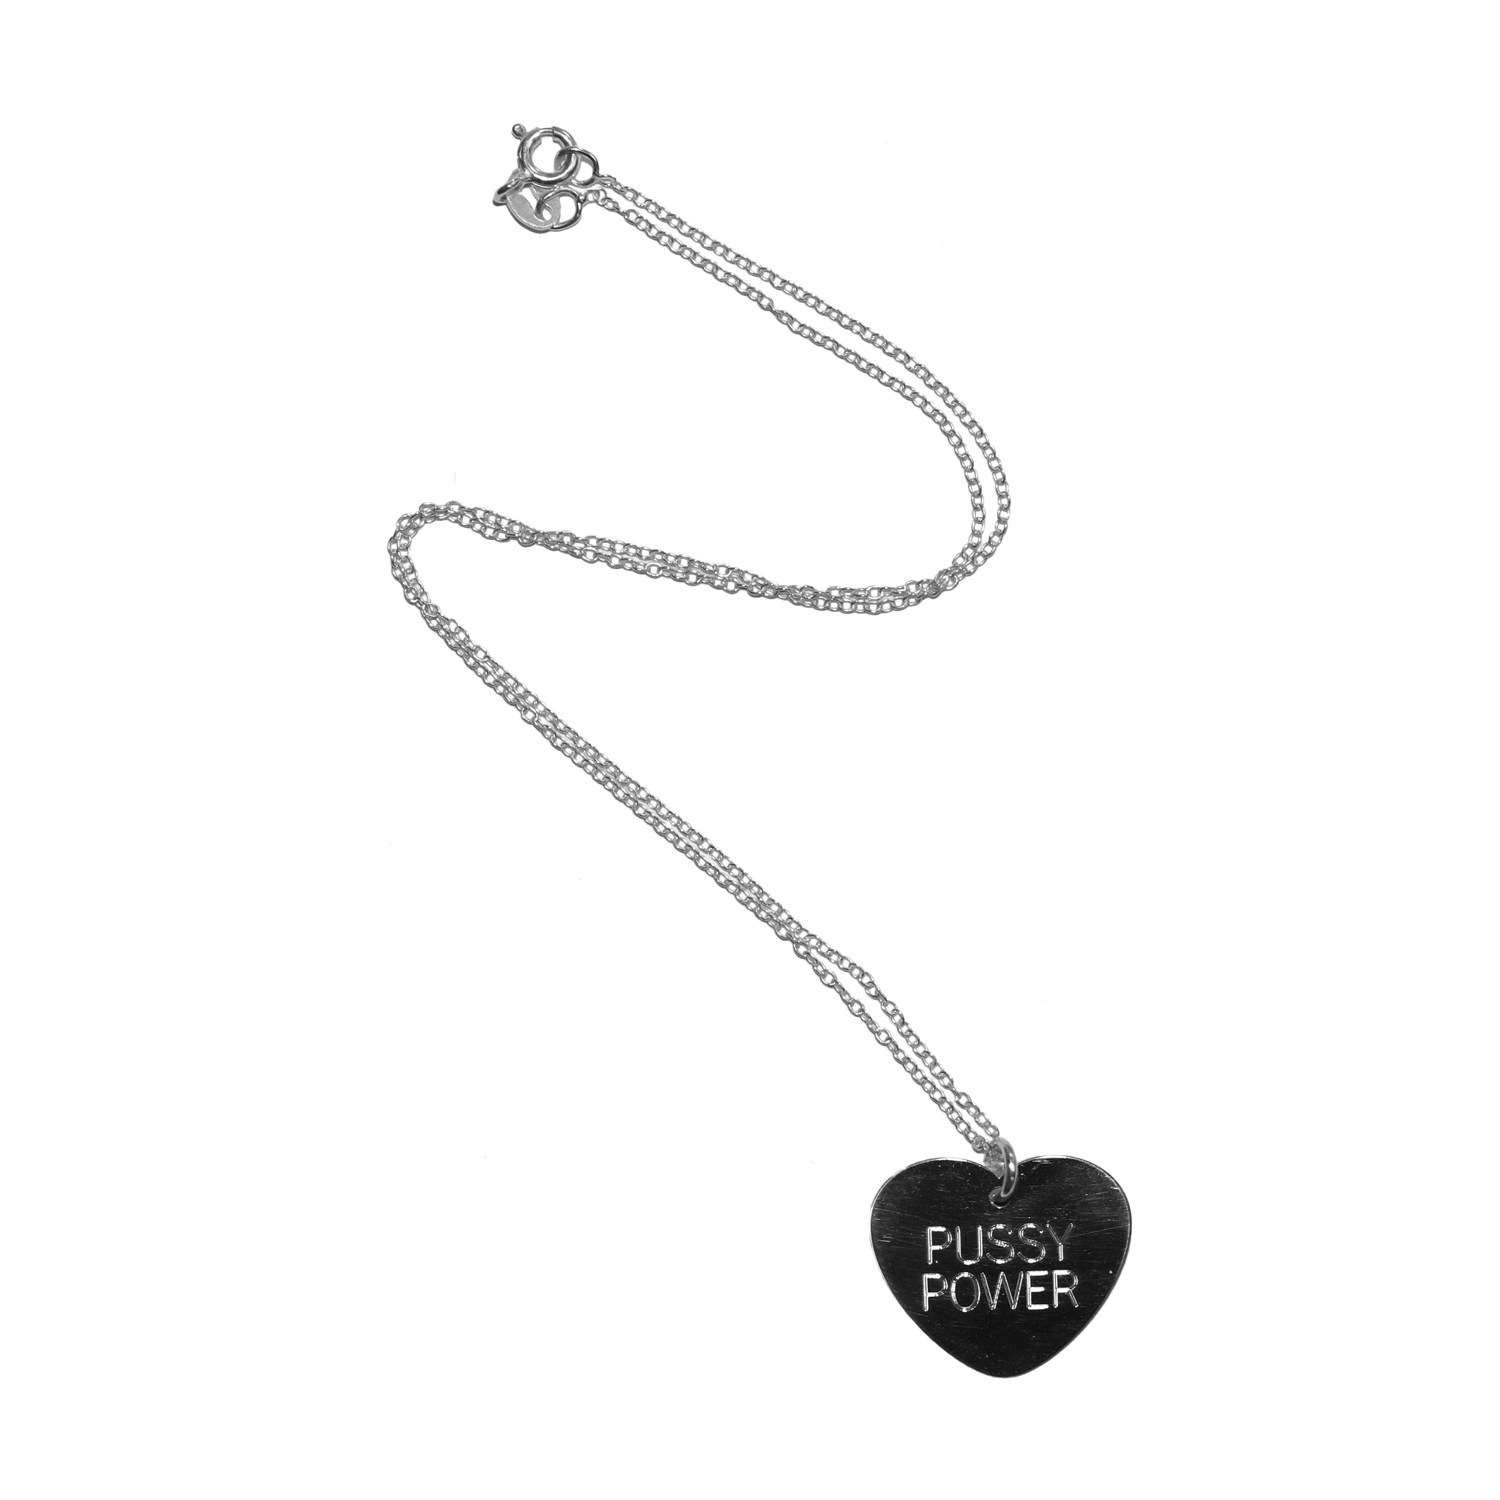 Pussy Power Necklace (Sterling Silver)